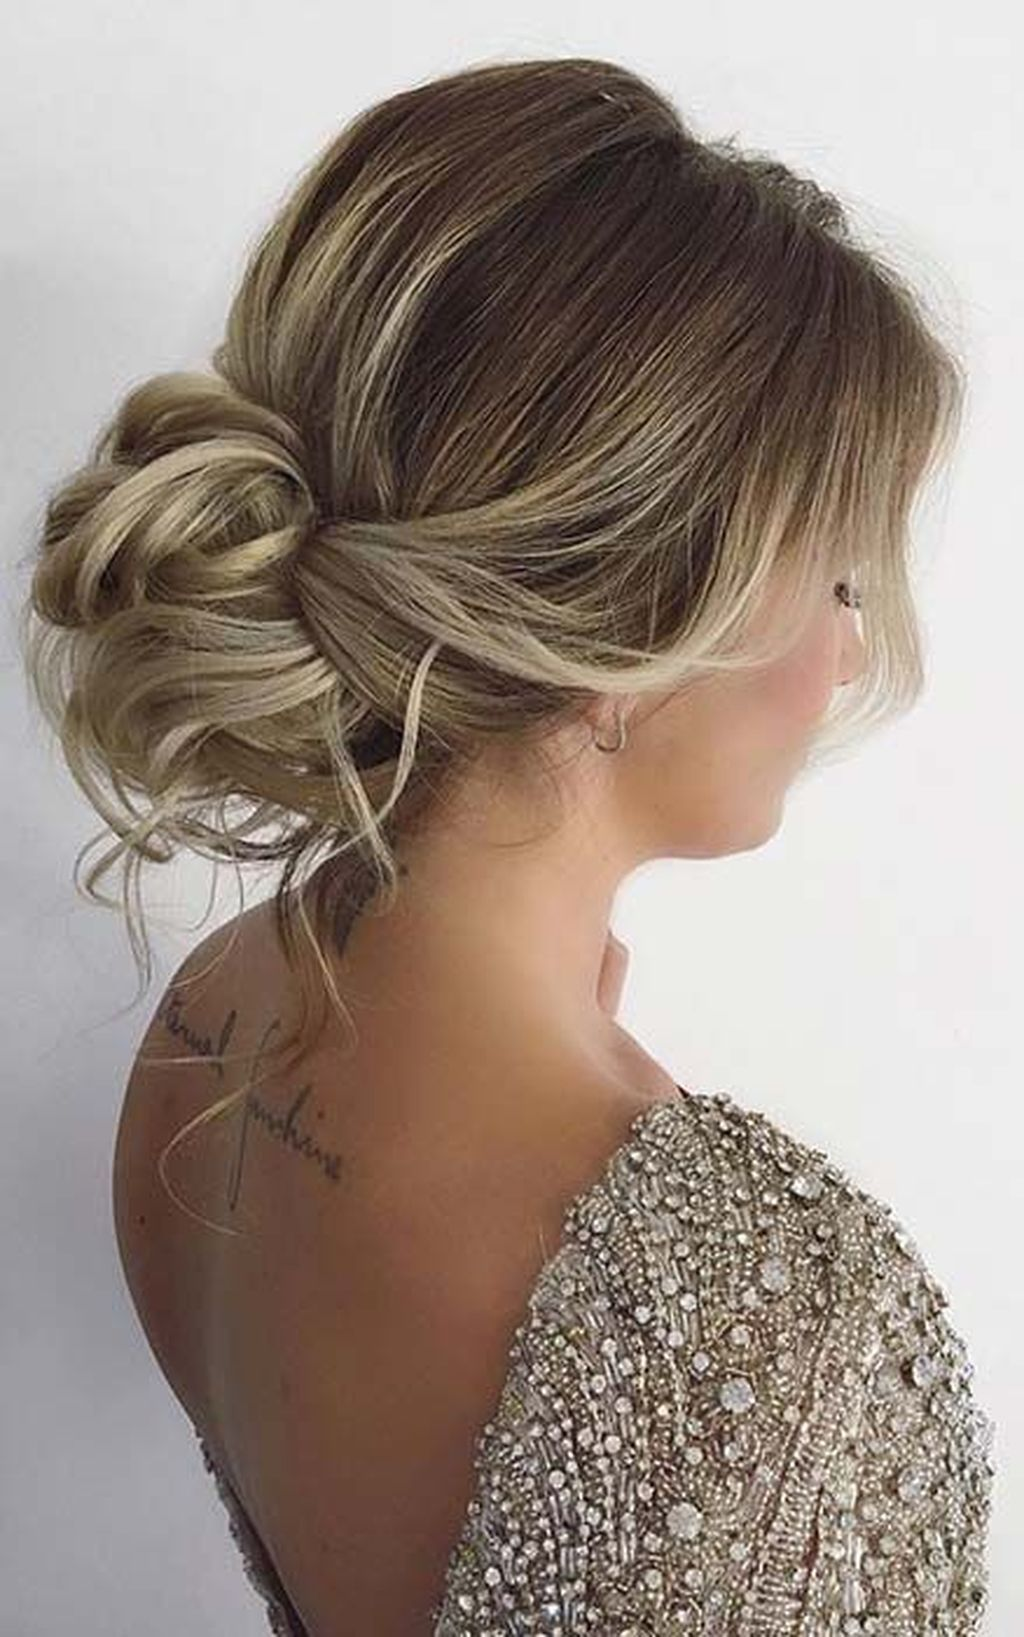 30 Amazing Bun Hairstyles Ideas That You Ll Love Ball Hairstyles Hair Styles Bun Hairstyles